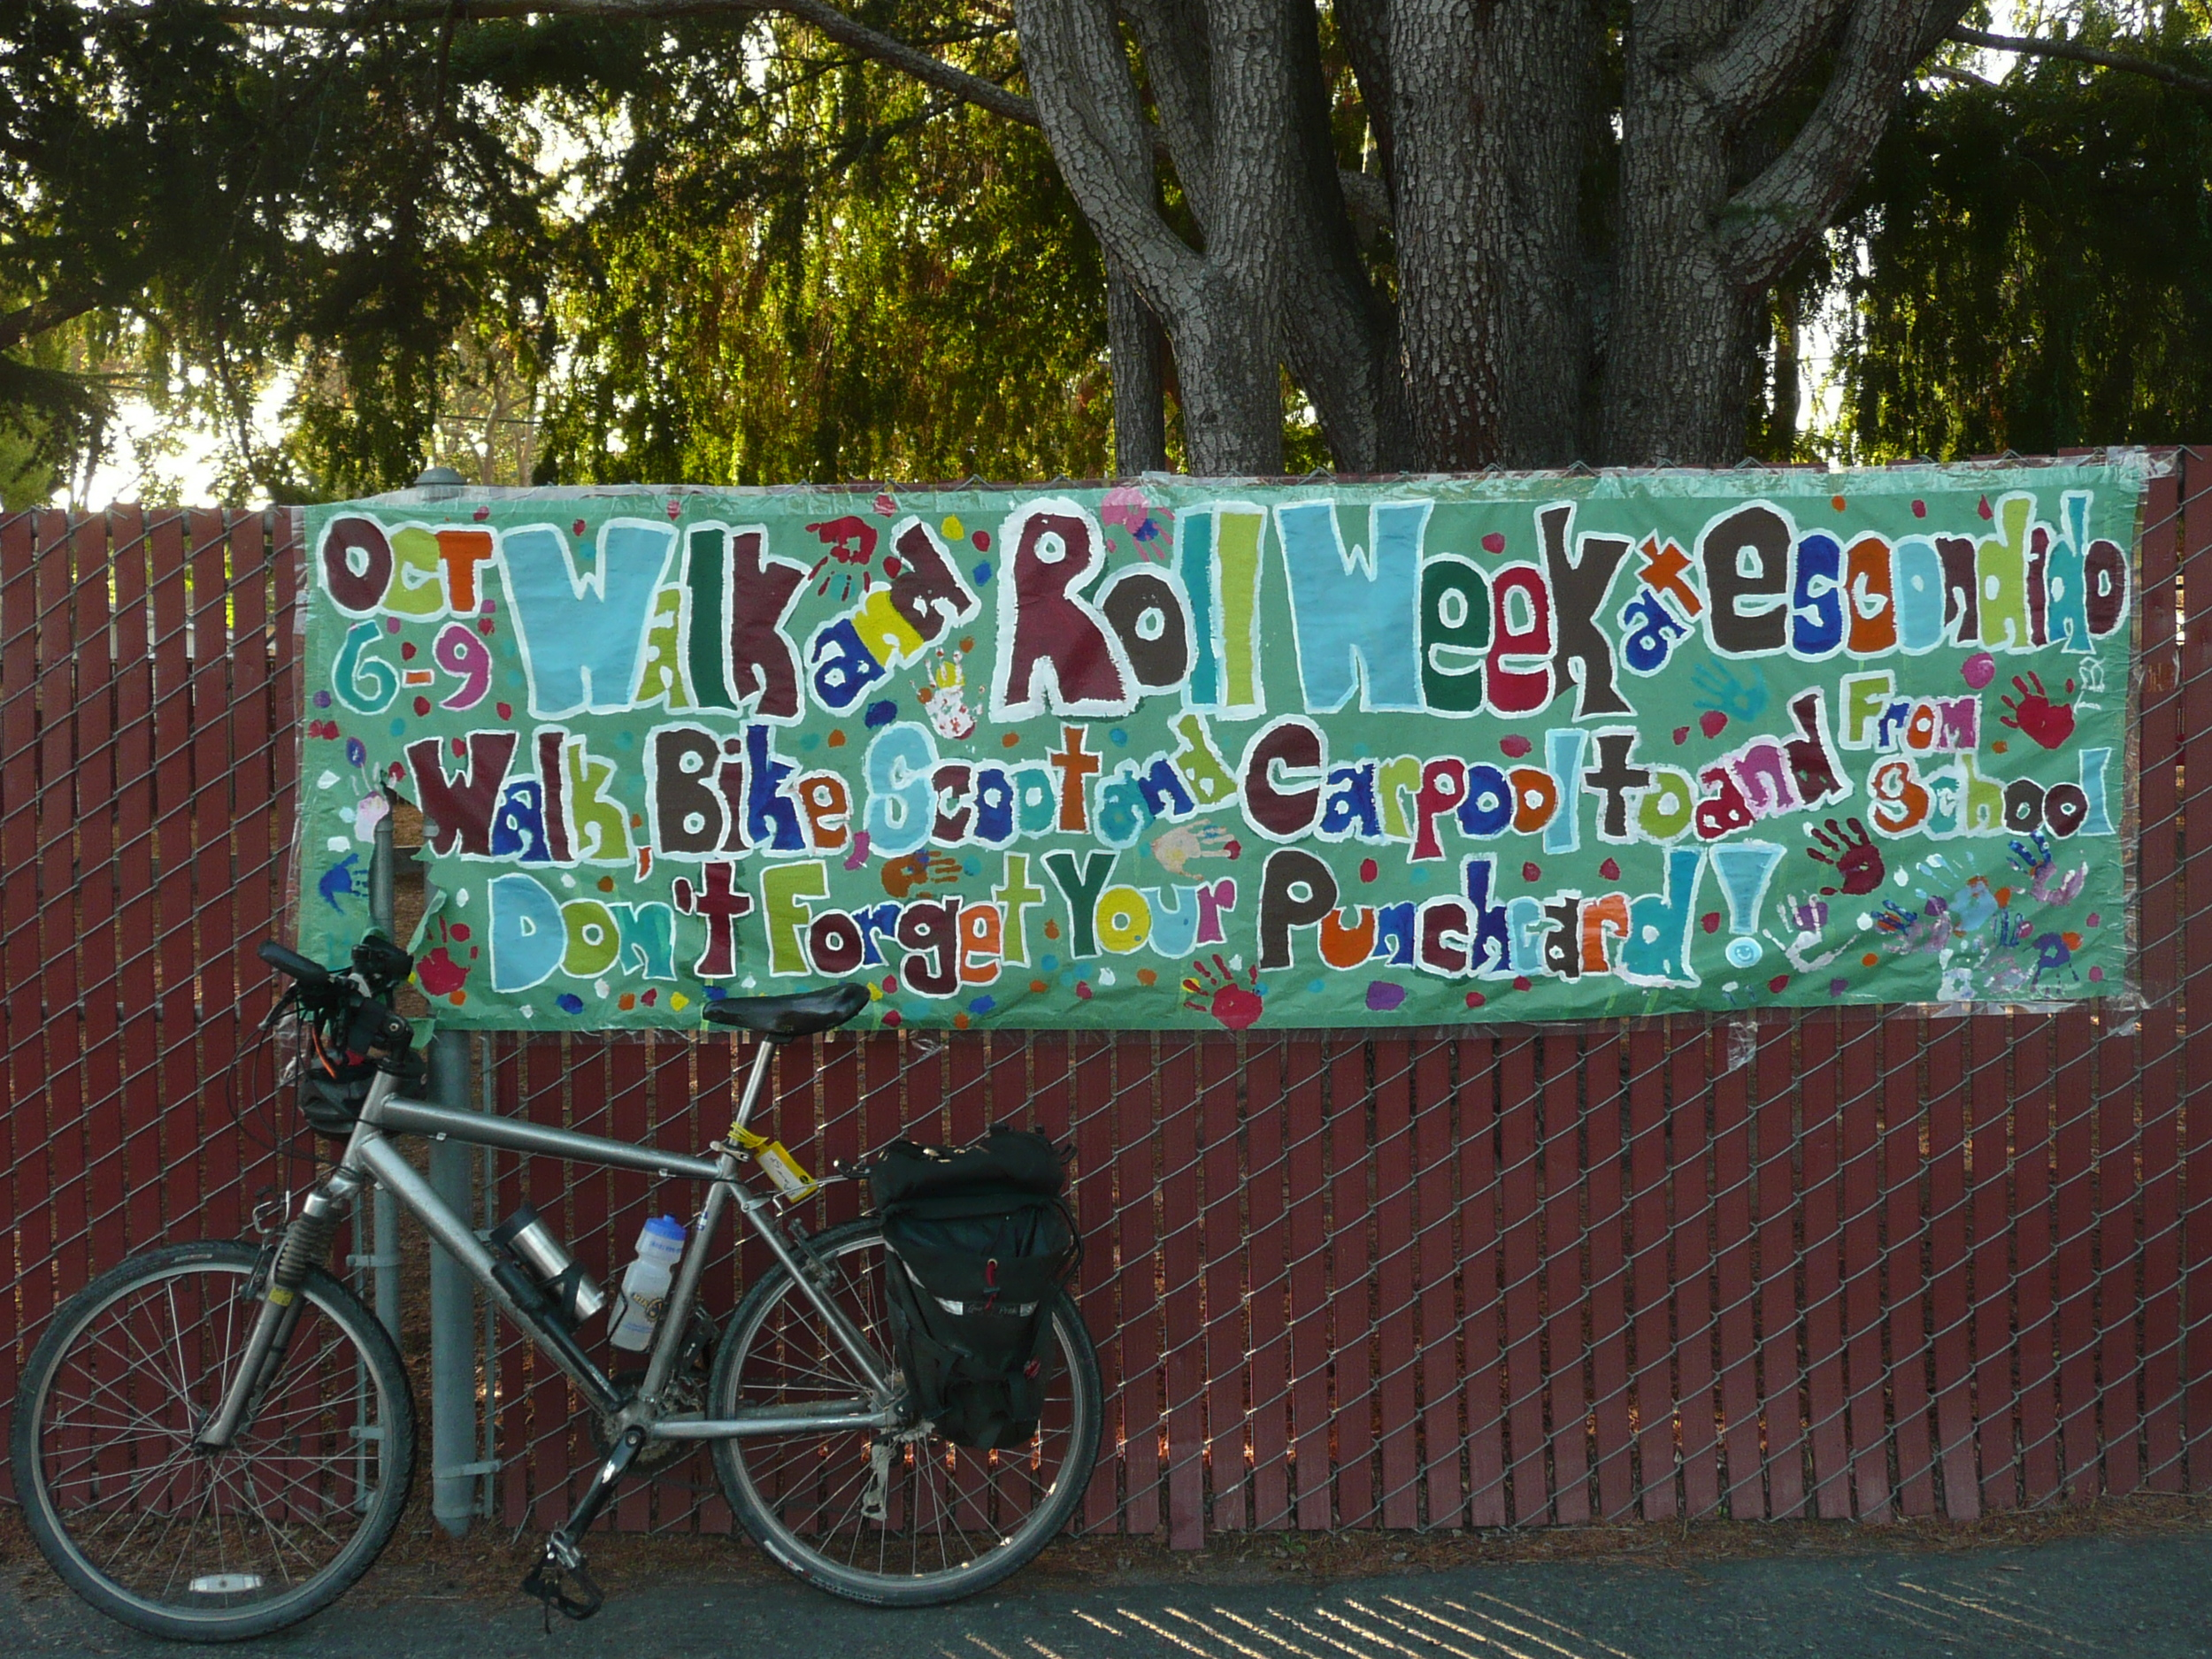 Our awesome Walk & Roll banner, painted by the after-school kids club.